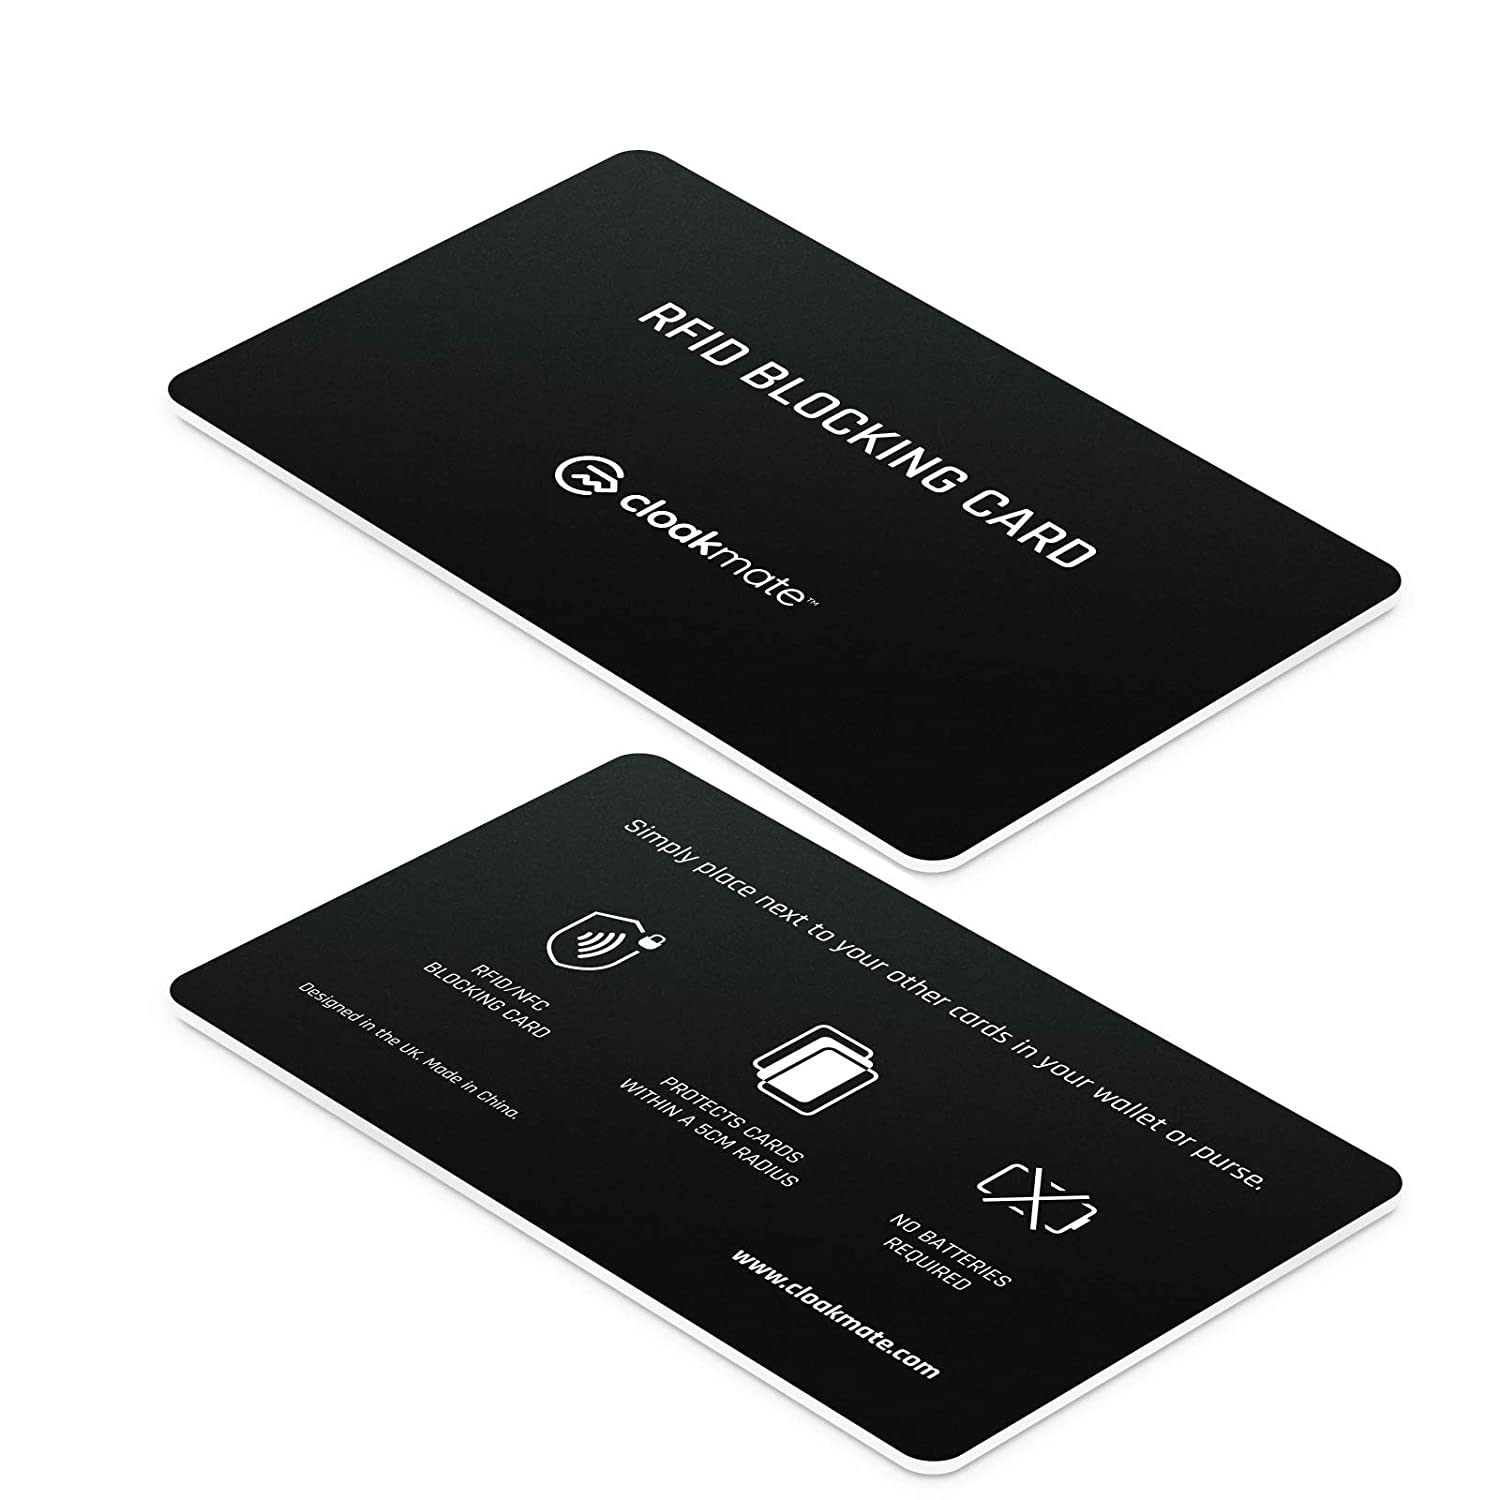 2 x RFID/NFC Blocking Card by Cloakmate | Contactless Protection for Entire Wallet | Credit & Debit Card Protector | No Batteries Required - Double Pack